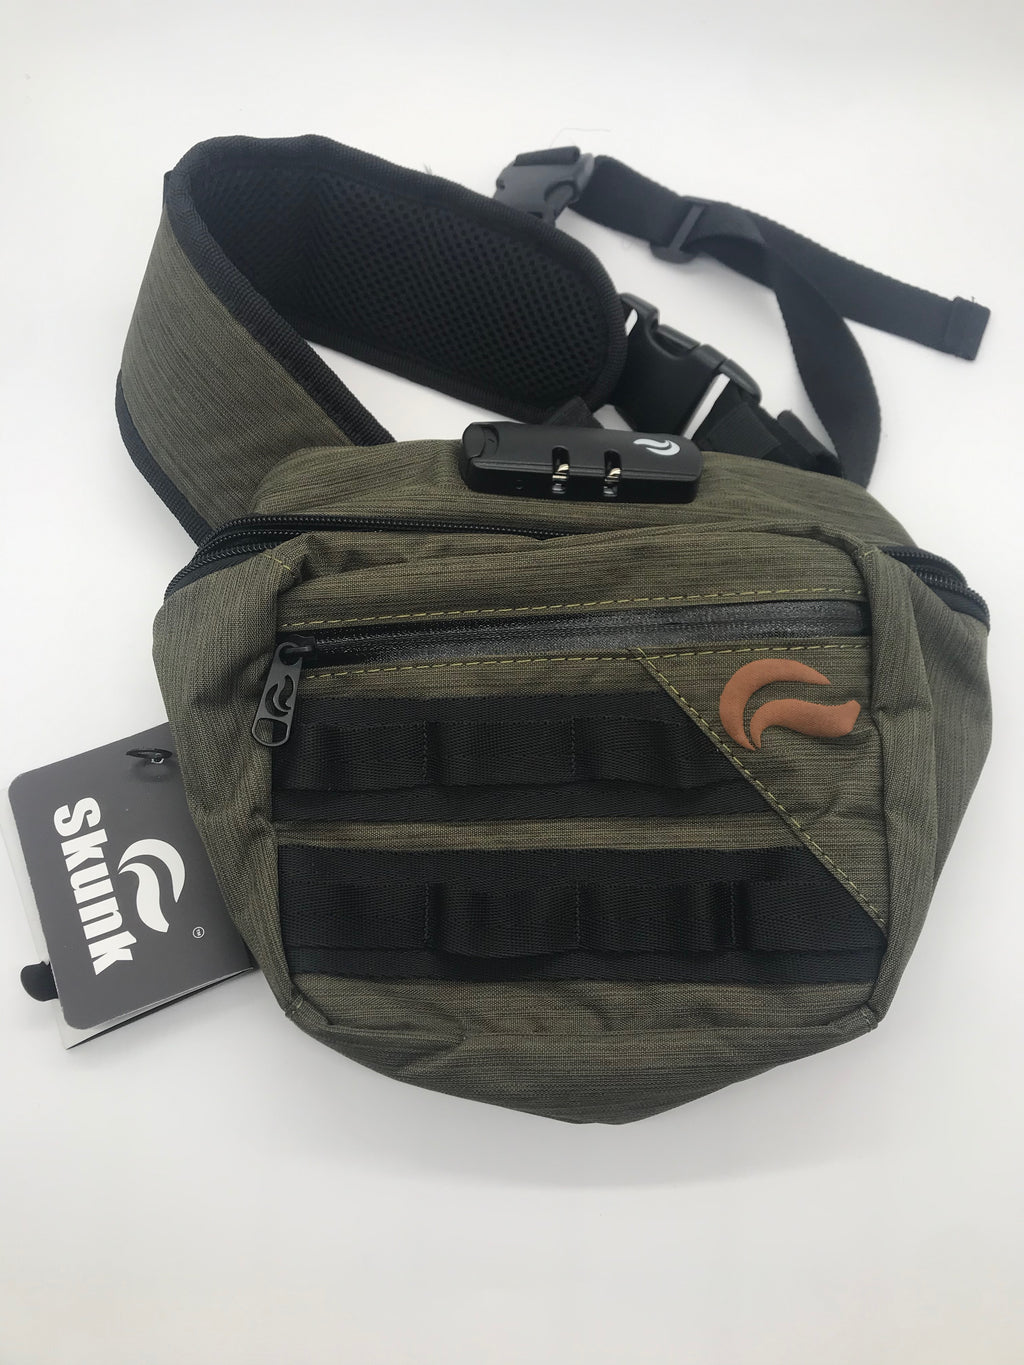 Skunk Kross Odorless bag